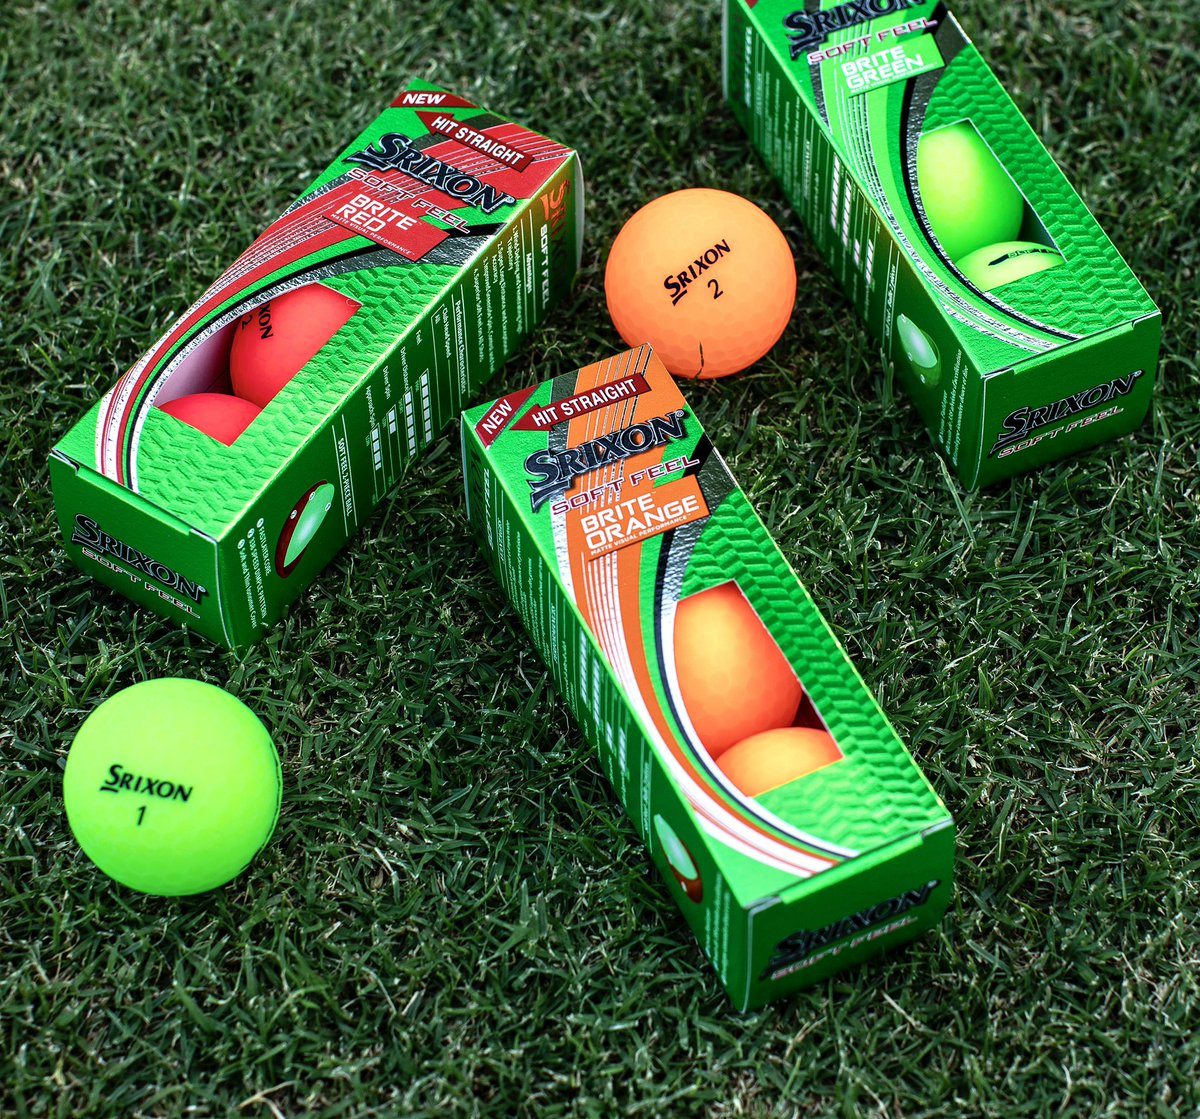 Replying to @SrixonGolf: Same great performance as Soft Feel, just BRITE(R).